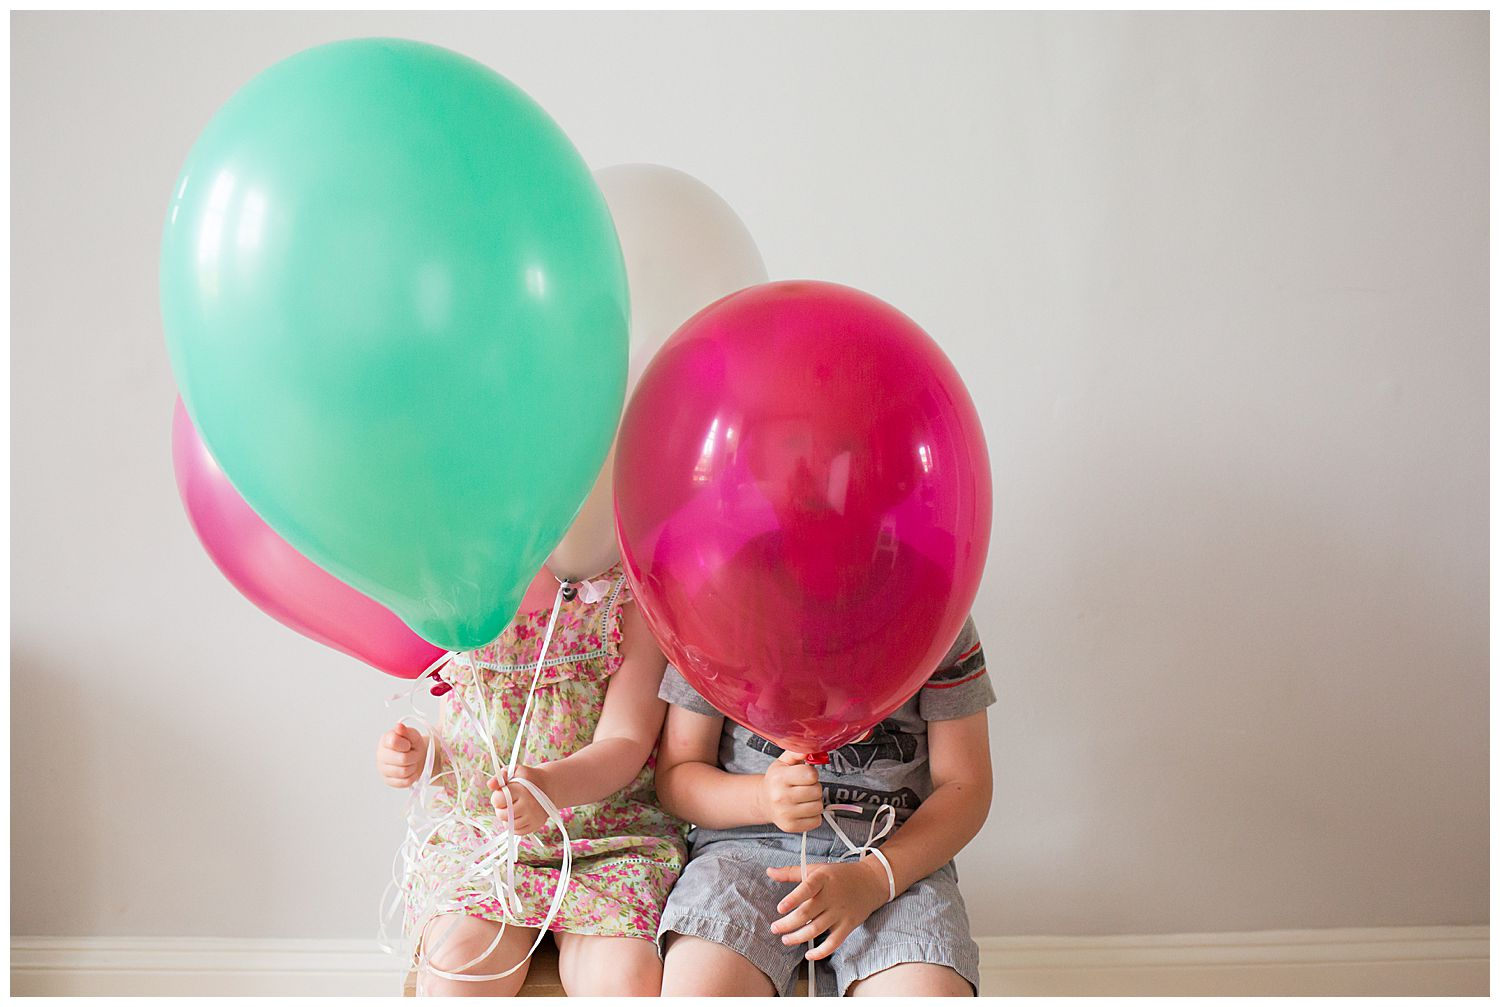 brother and sister hiding behind balloons